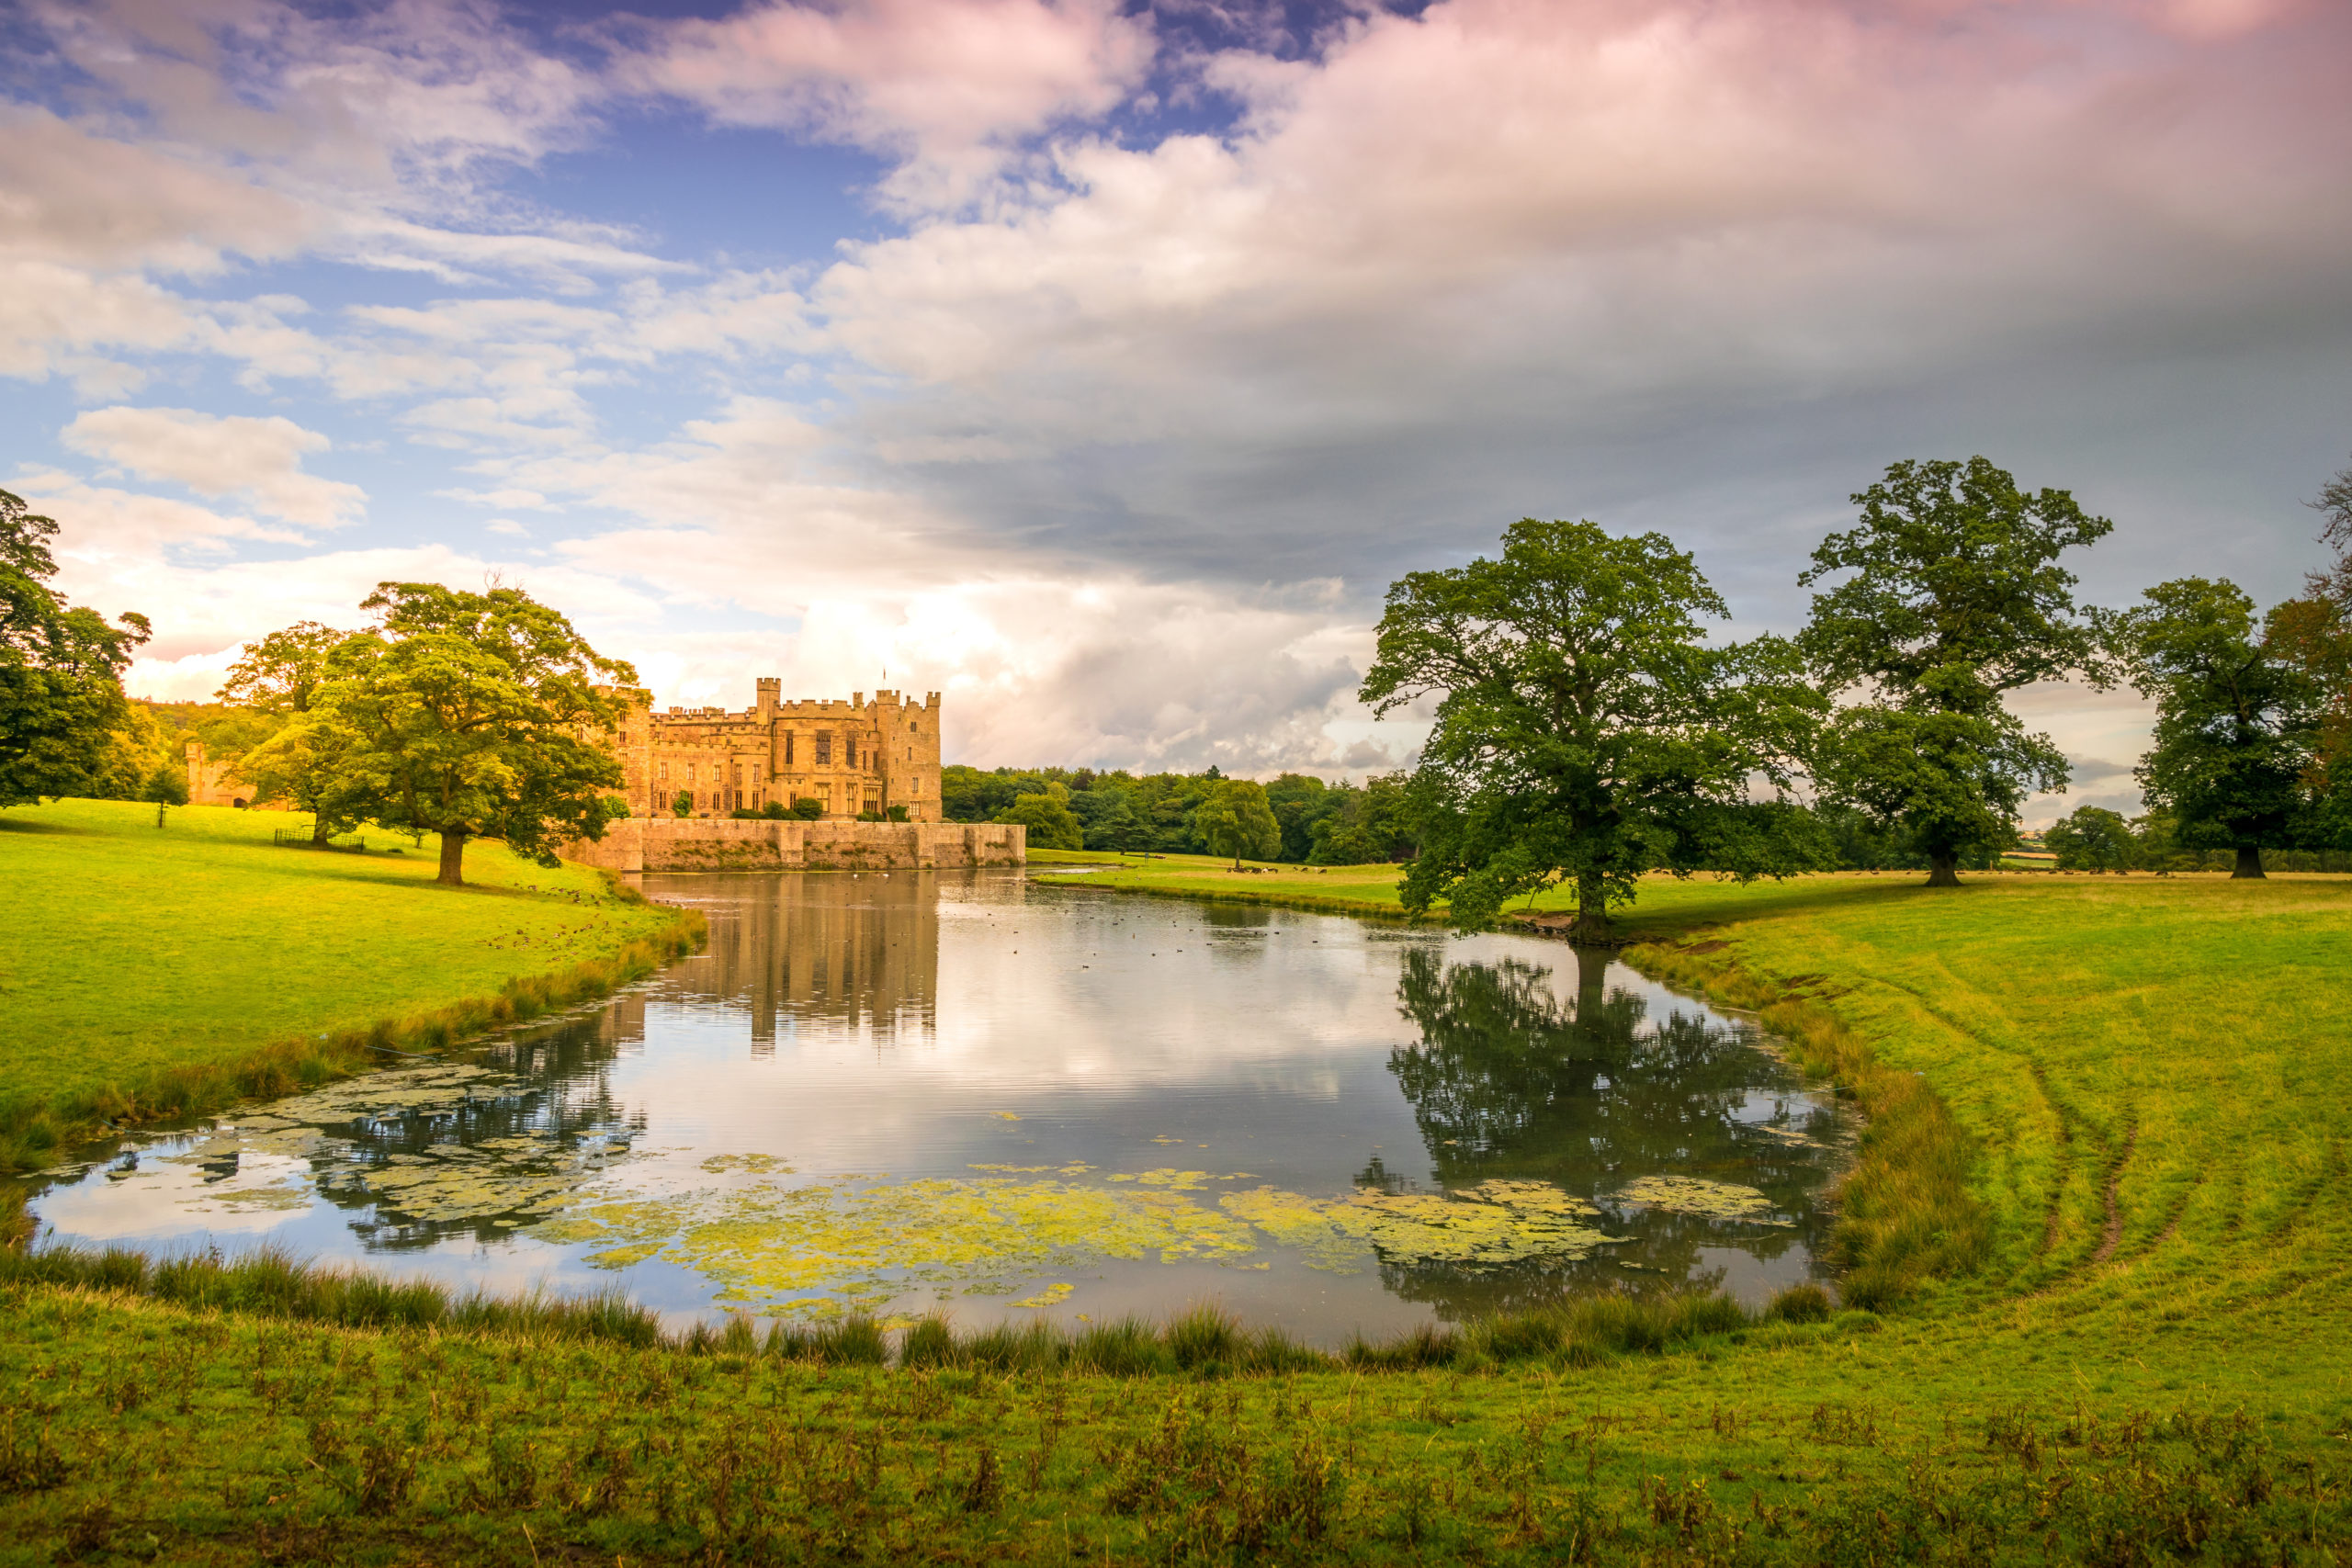 Raby Castle reflected in a pond and a parklike setting.